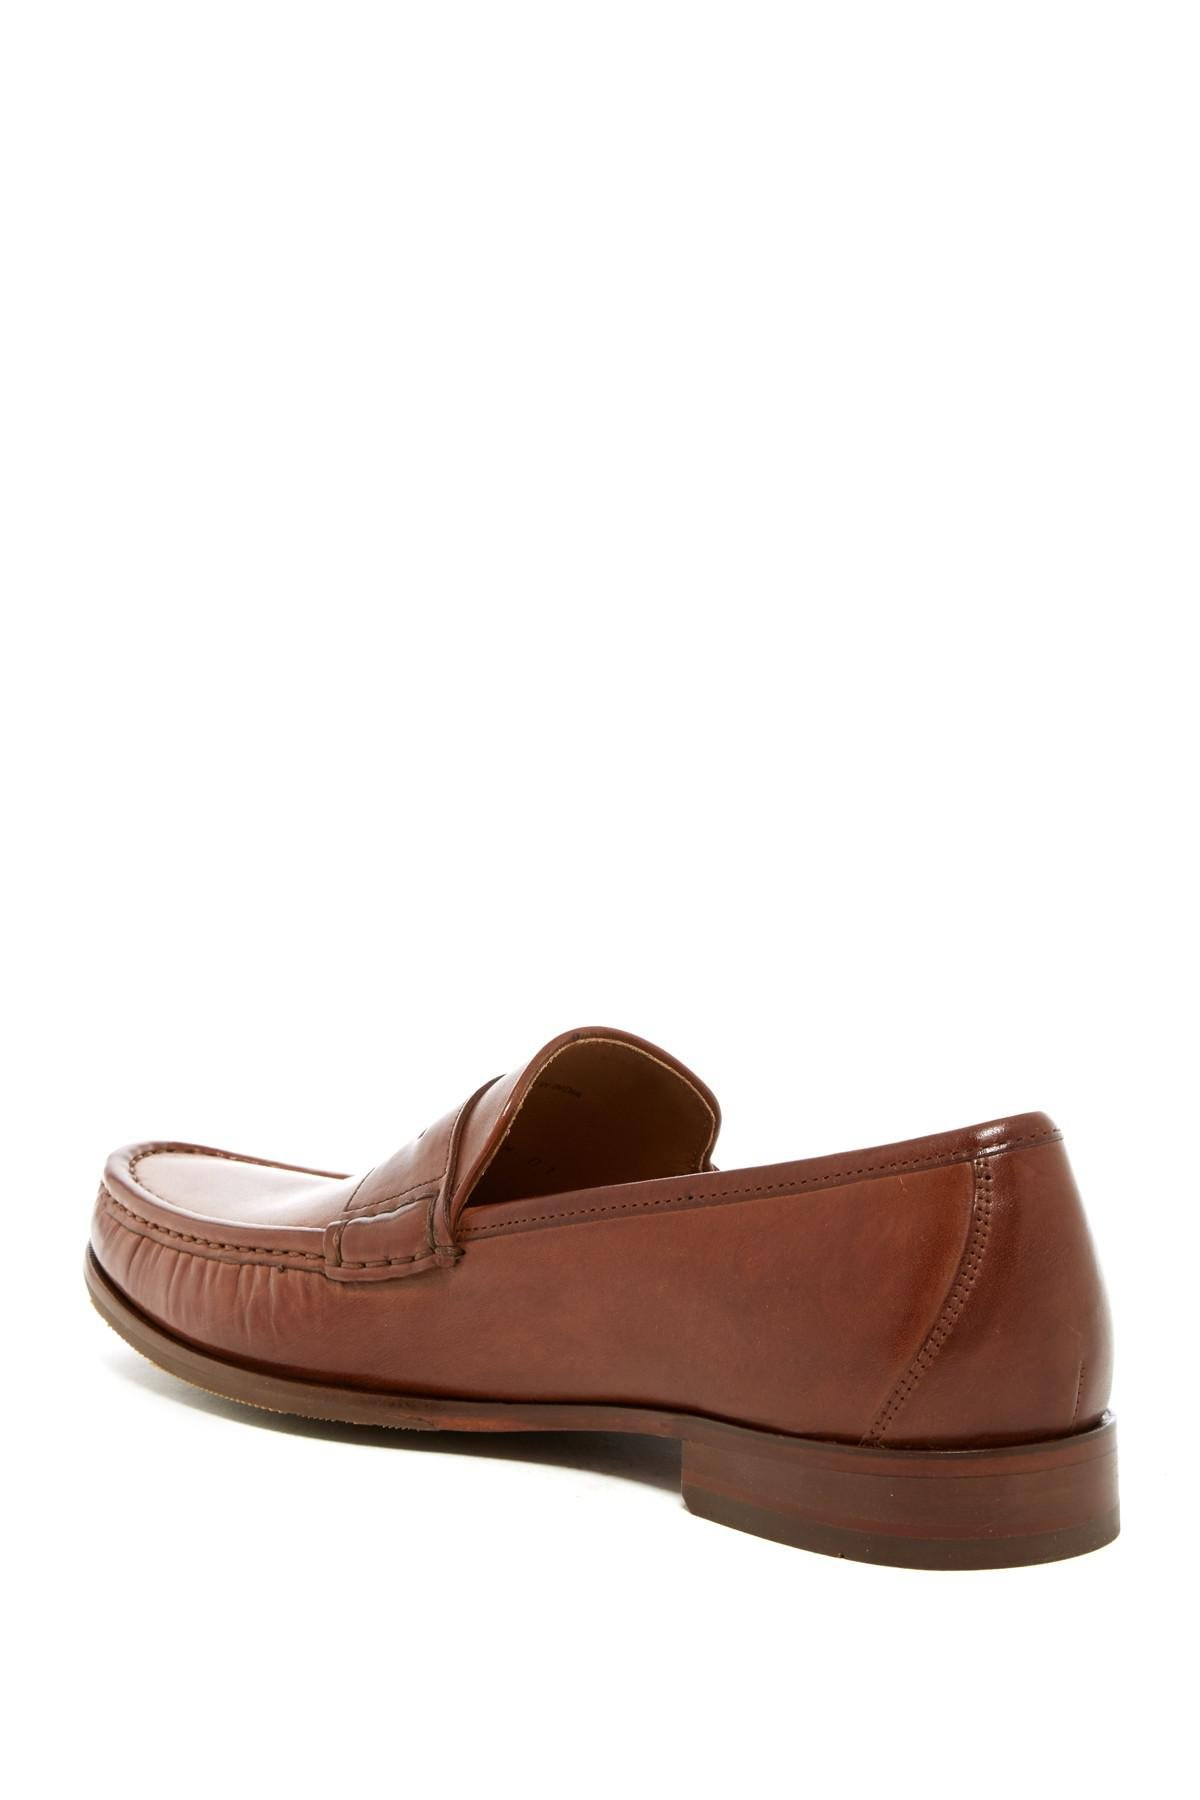 26715822cd5 Cole Haan - Brown Aiden Grand Ii Penny Loafer - Wide Width Available for Men  -. View fullscreen